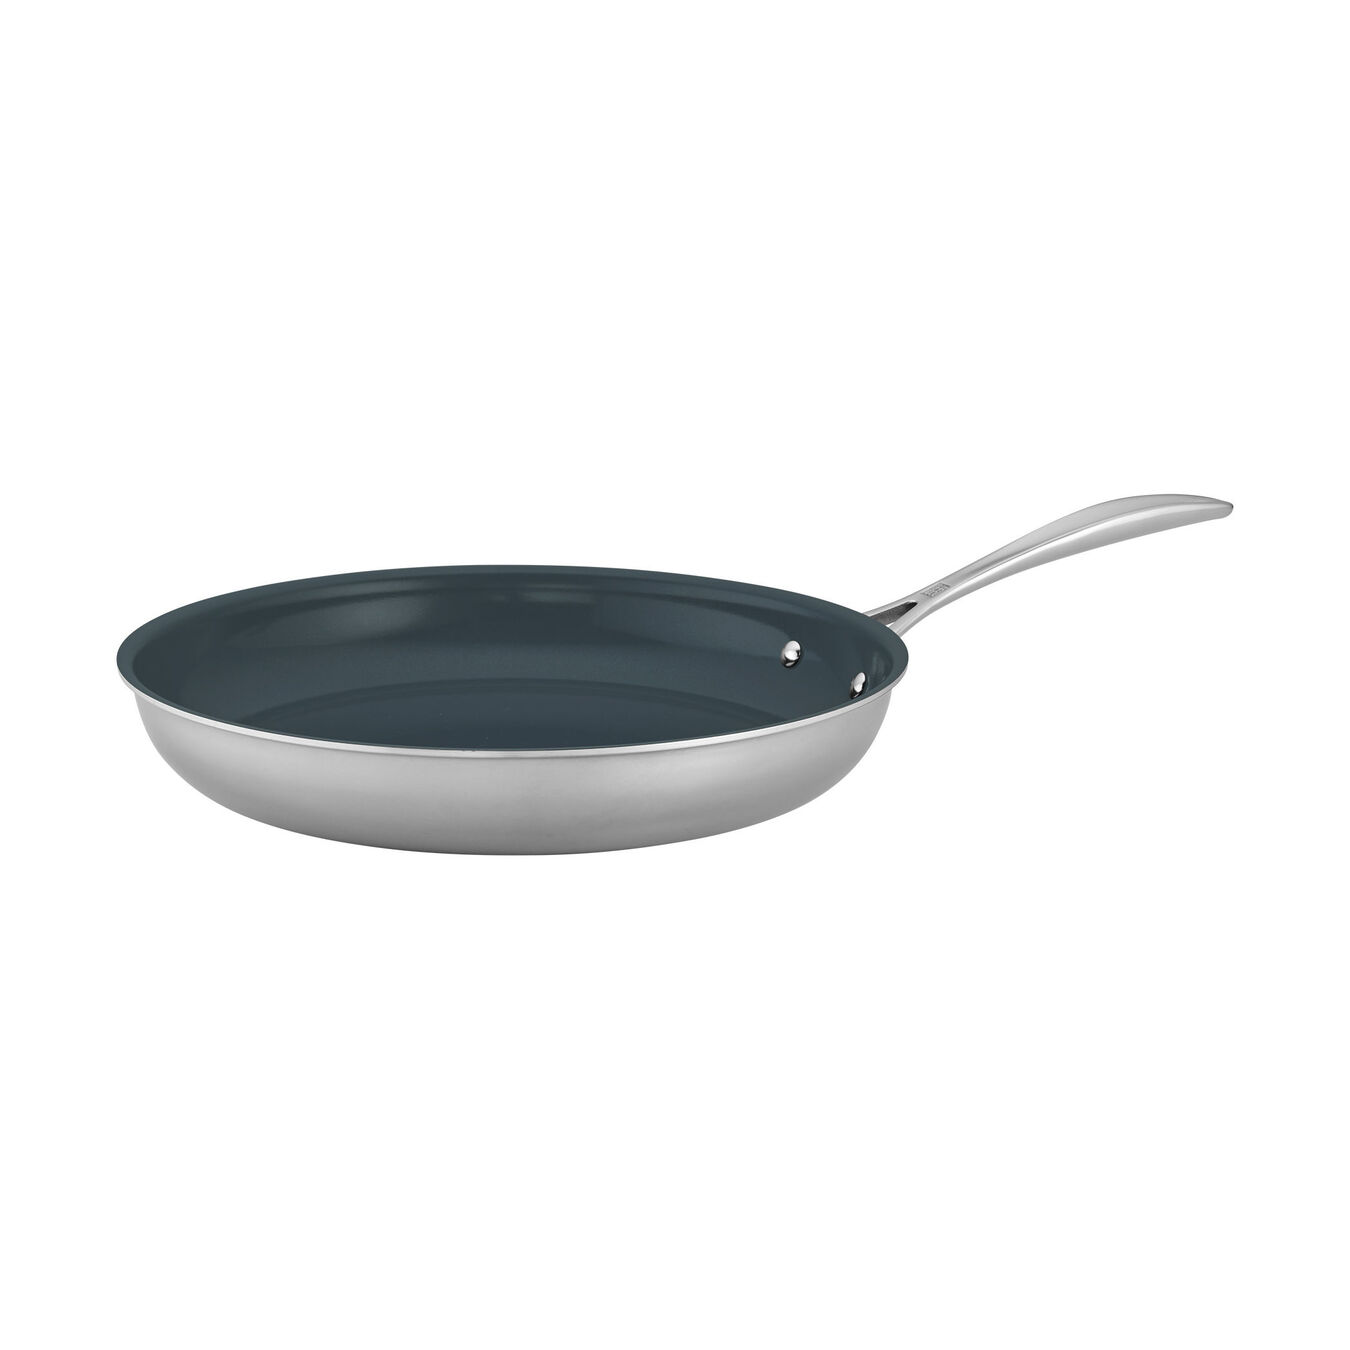 12-inch, 18/10 Stainless Steel, Ceramic, Non-stick, Frying pan,,large 1